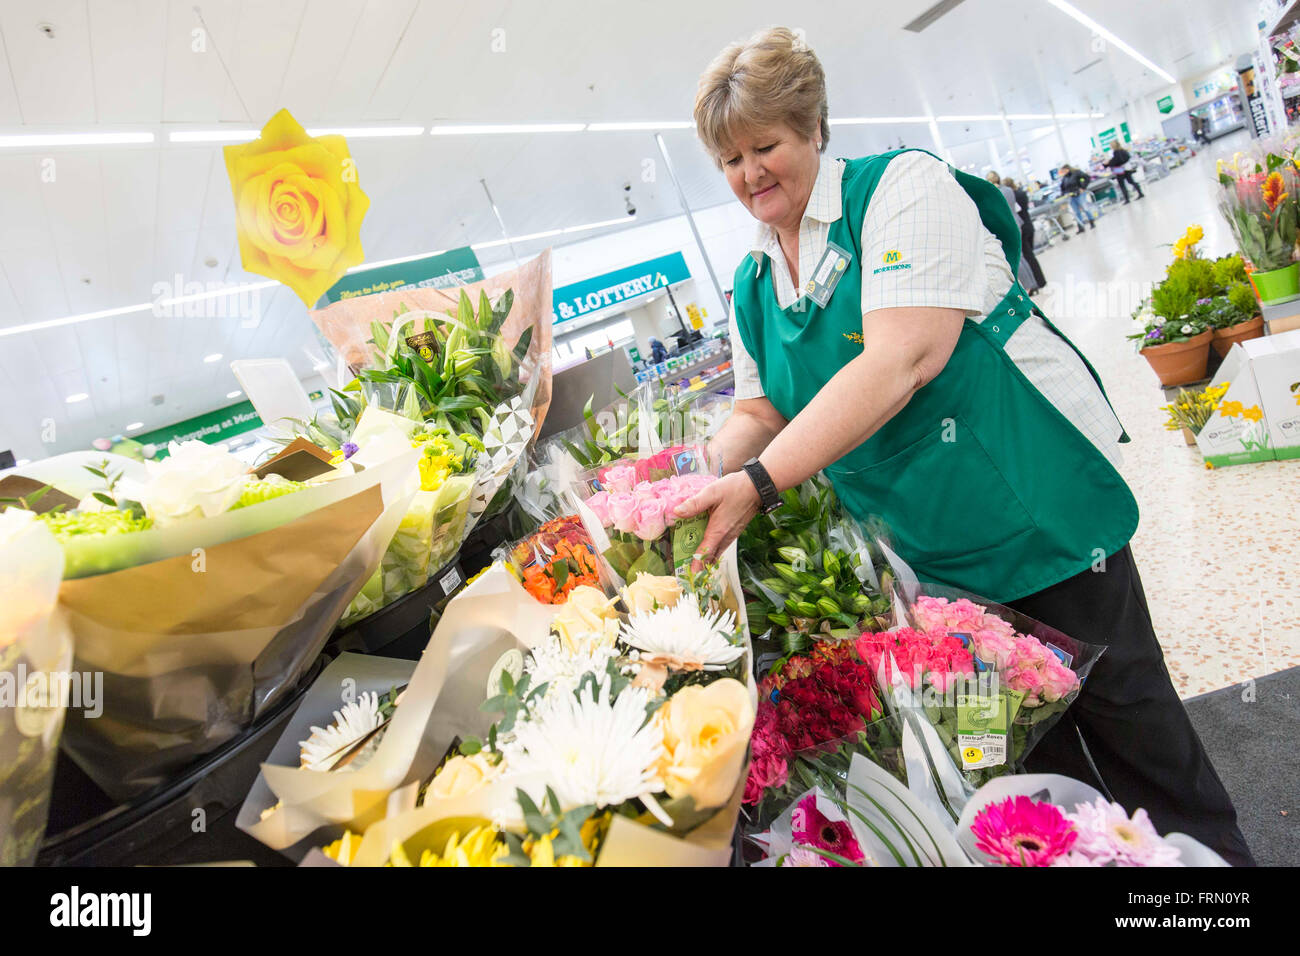 a woman works in the flower section of a Morrisons supermarket - Stock Image